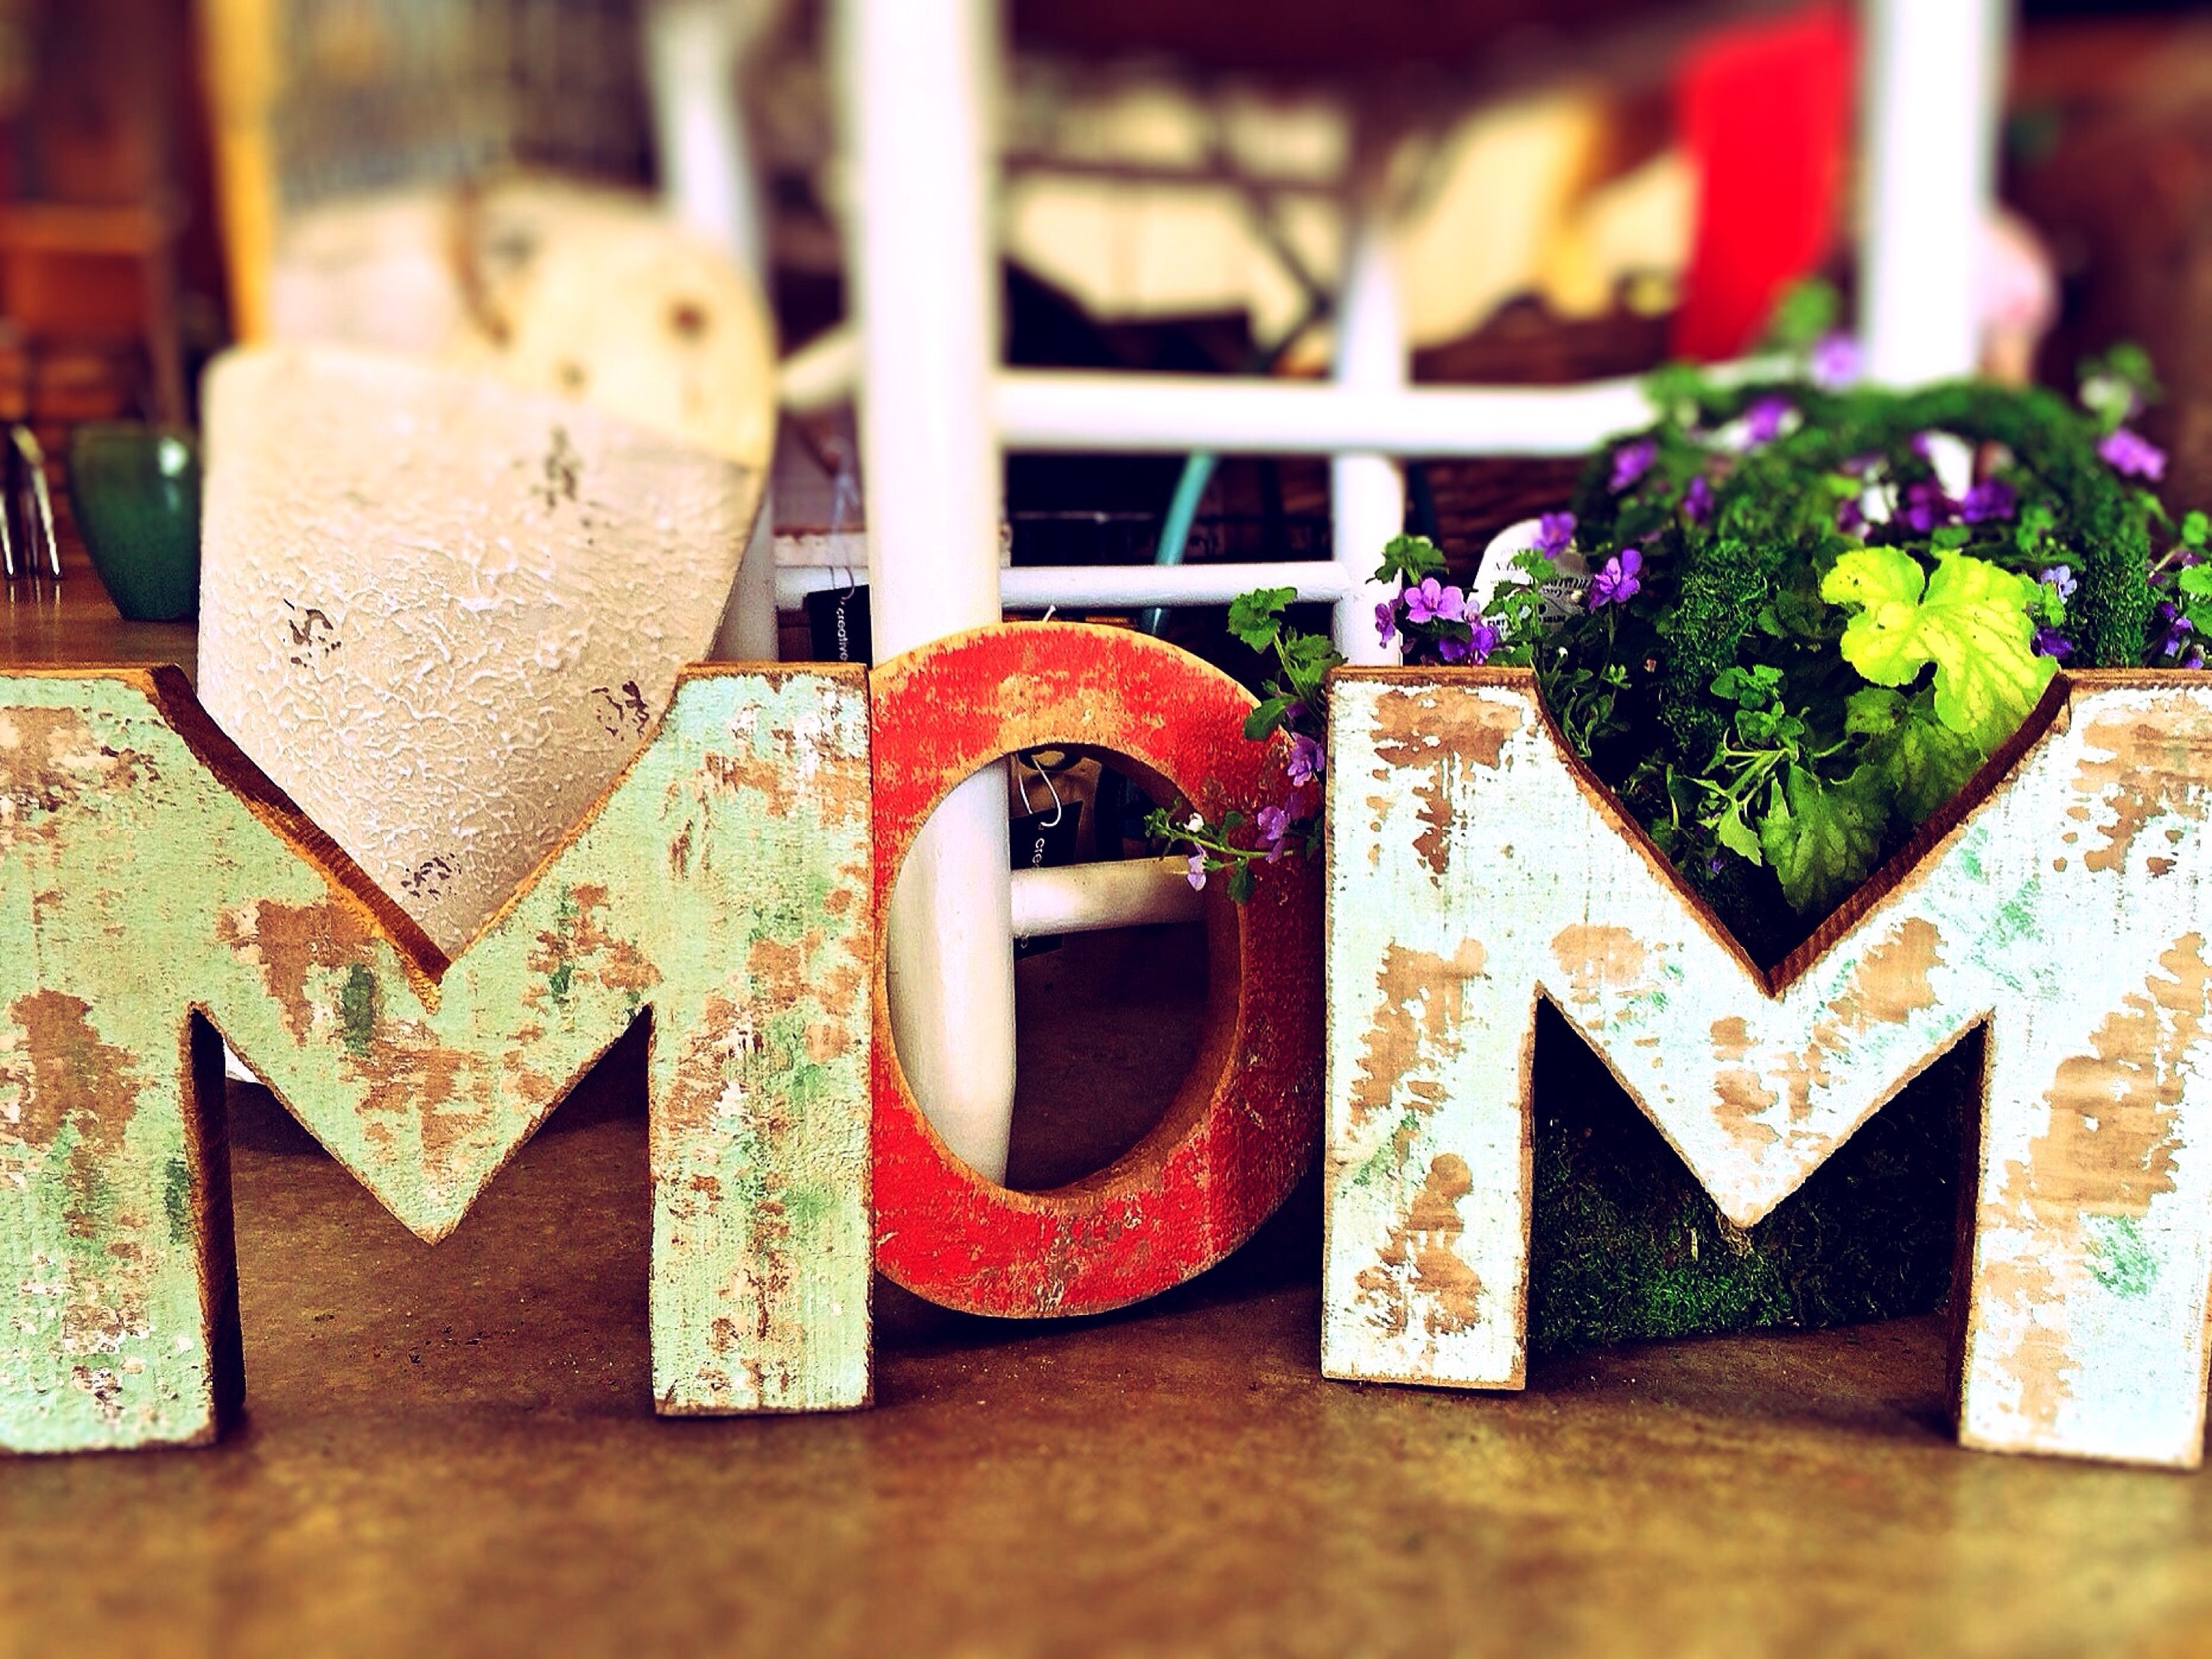 Personalised Mother's Day Gift Ideas - Make Your Mom Feel Special